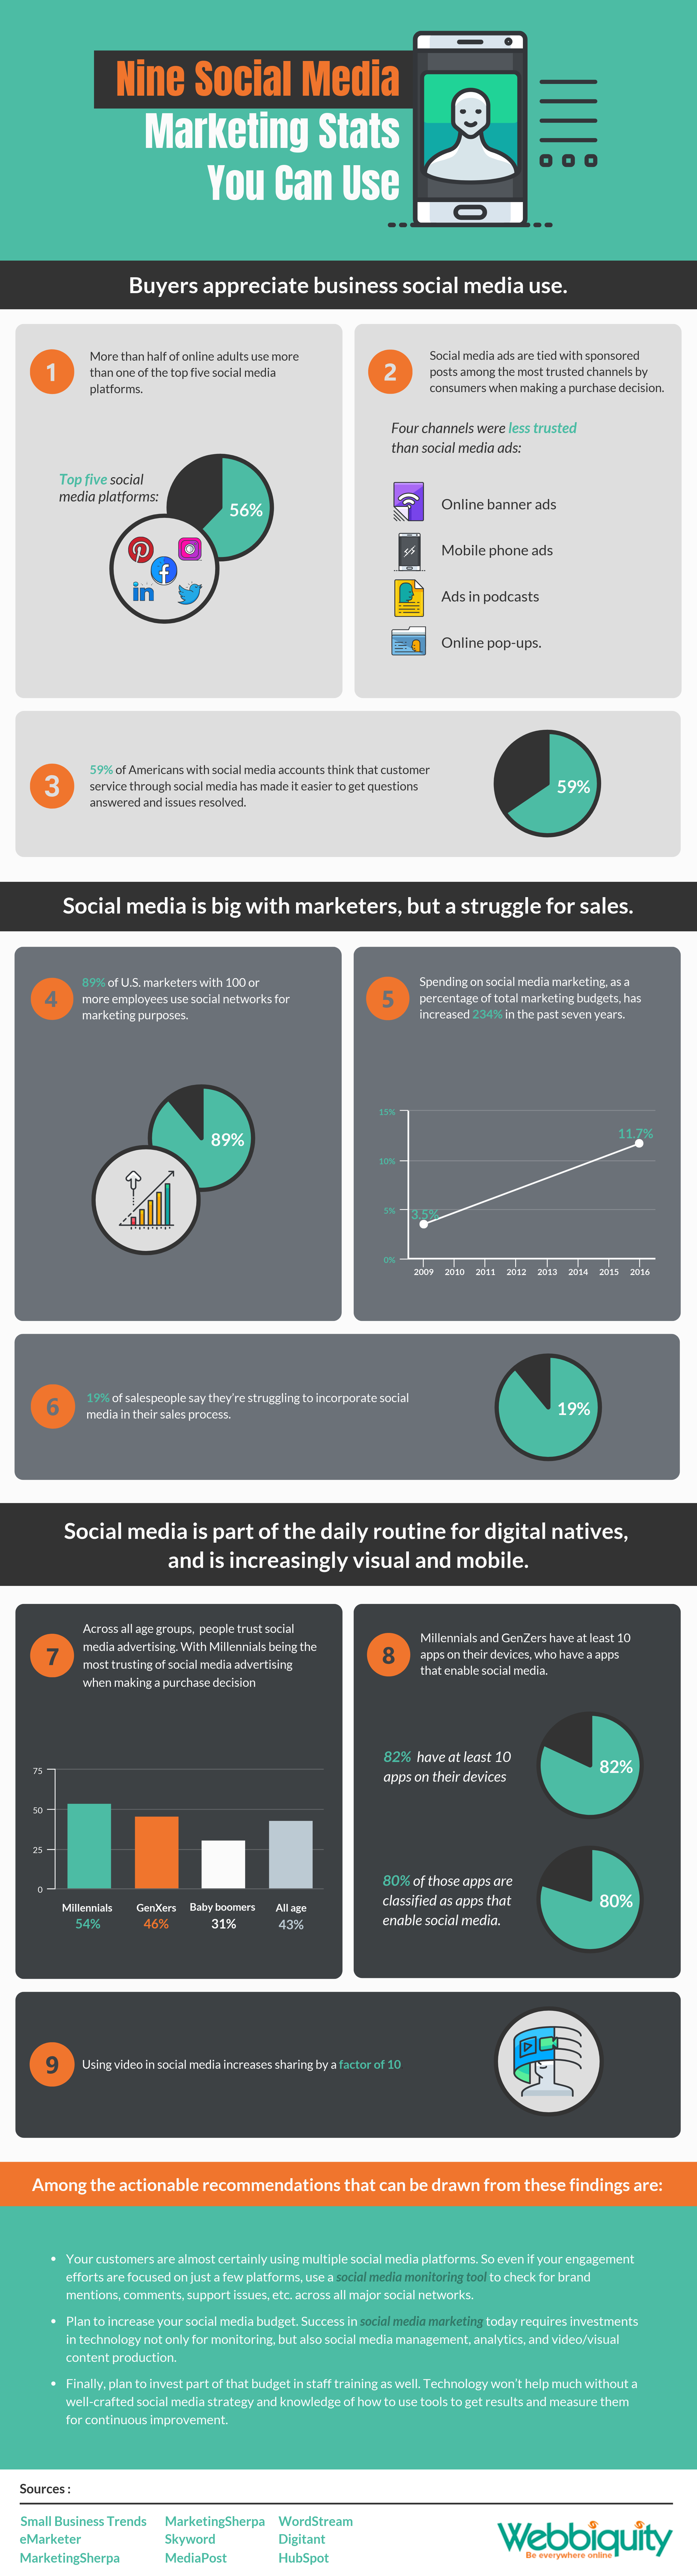 9 social media marketing stats you can use - infographic